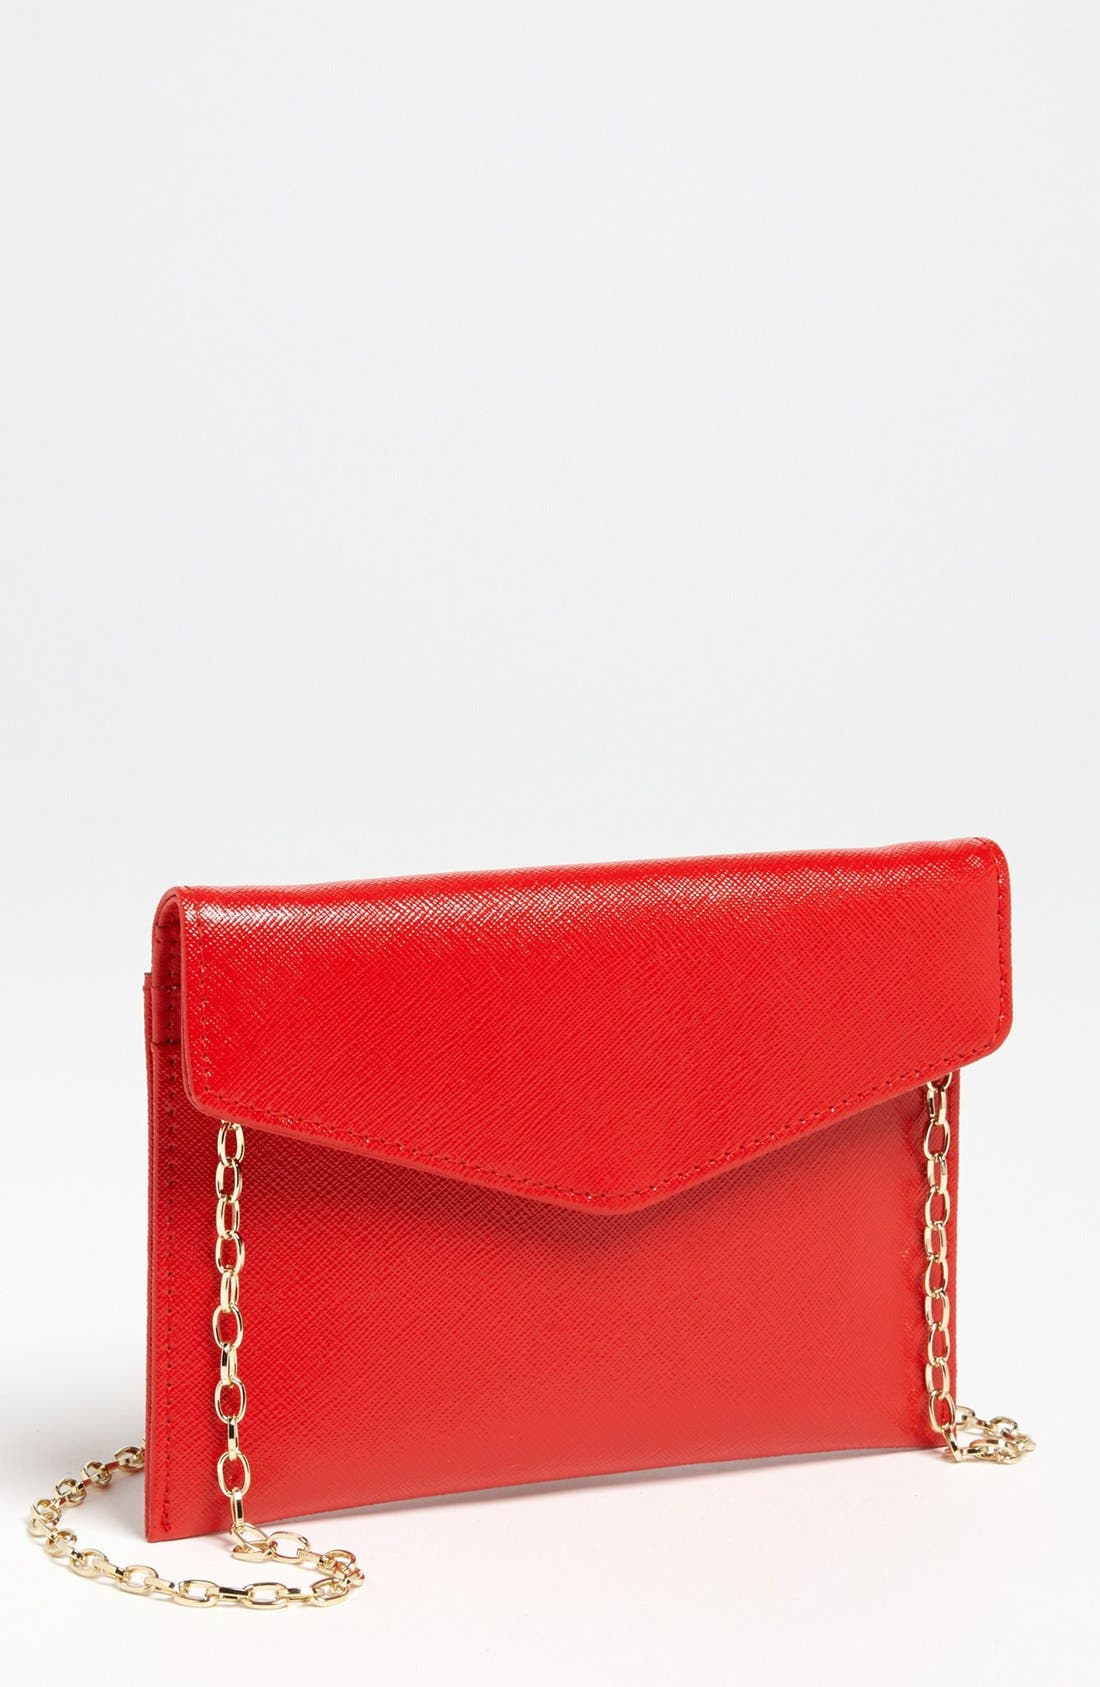 Alternate Image 1 Selected - Halogen 'Amy - Mini' Crossbody Bag